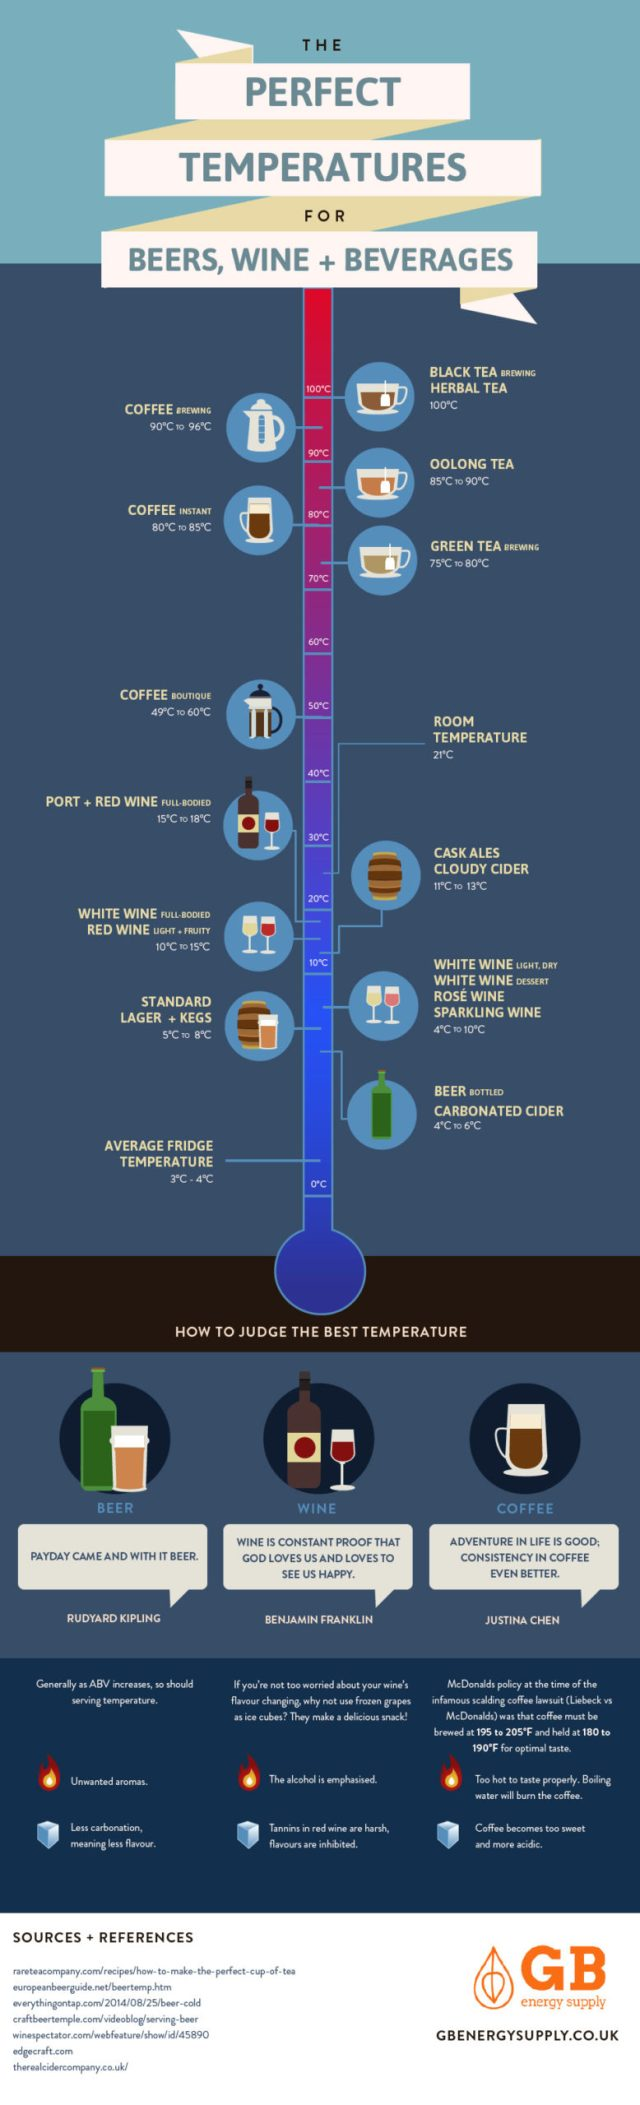 The perfect temperatures for beer, wine and beverages